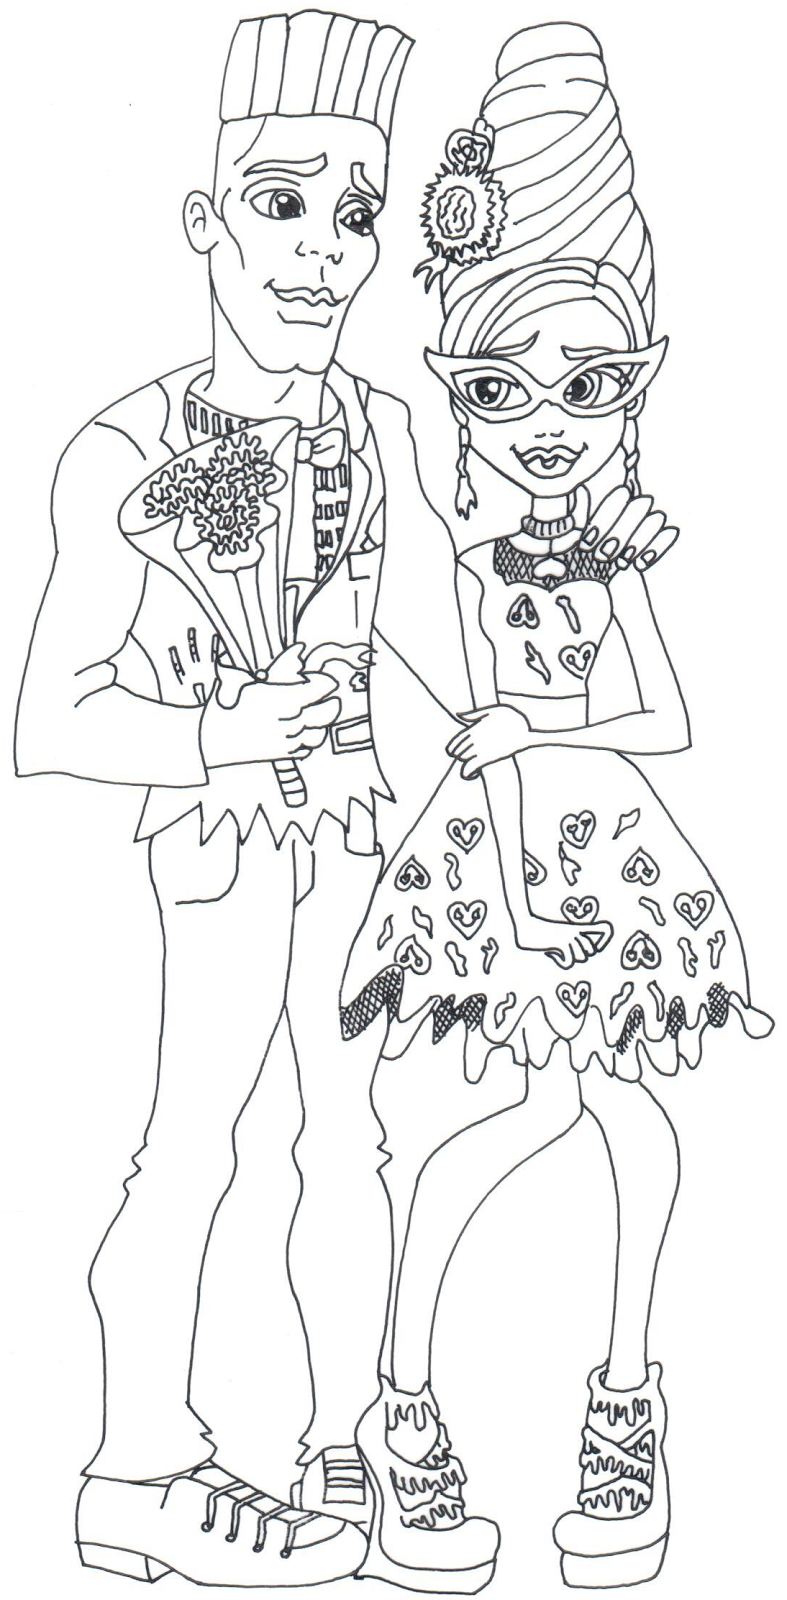 free printable monster high coloring page for ghoulia yelps and slo mo loves not dead - Free Monster High Coloring Pages